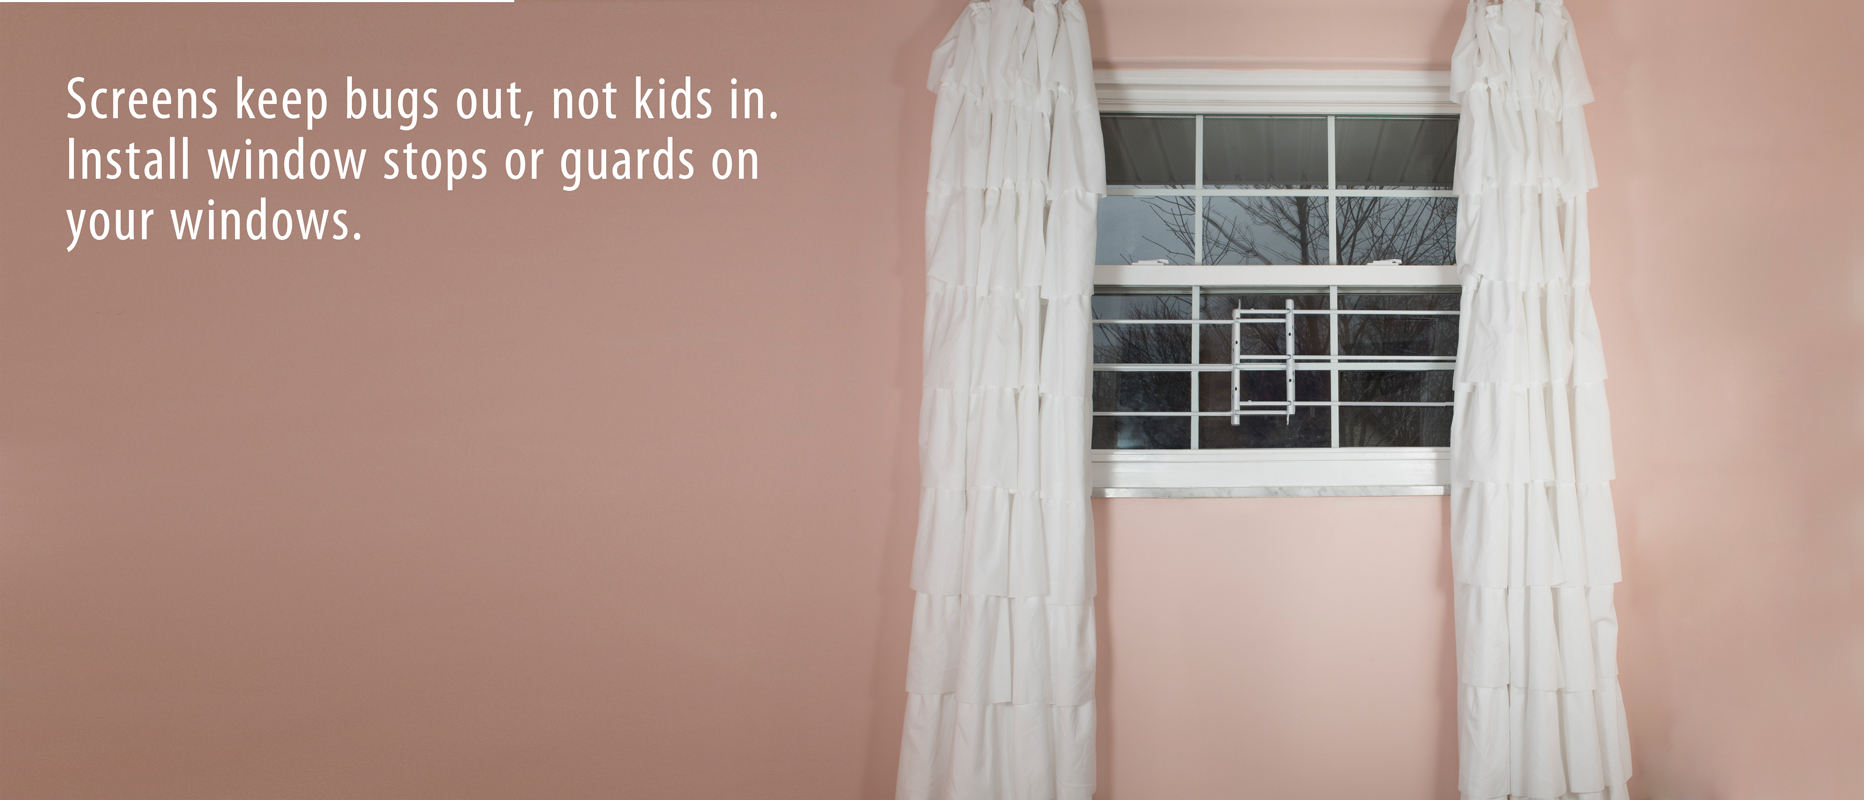 window-safety-fact-graphic.jpg